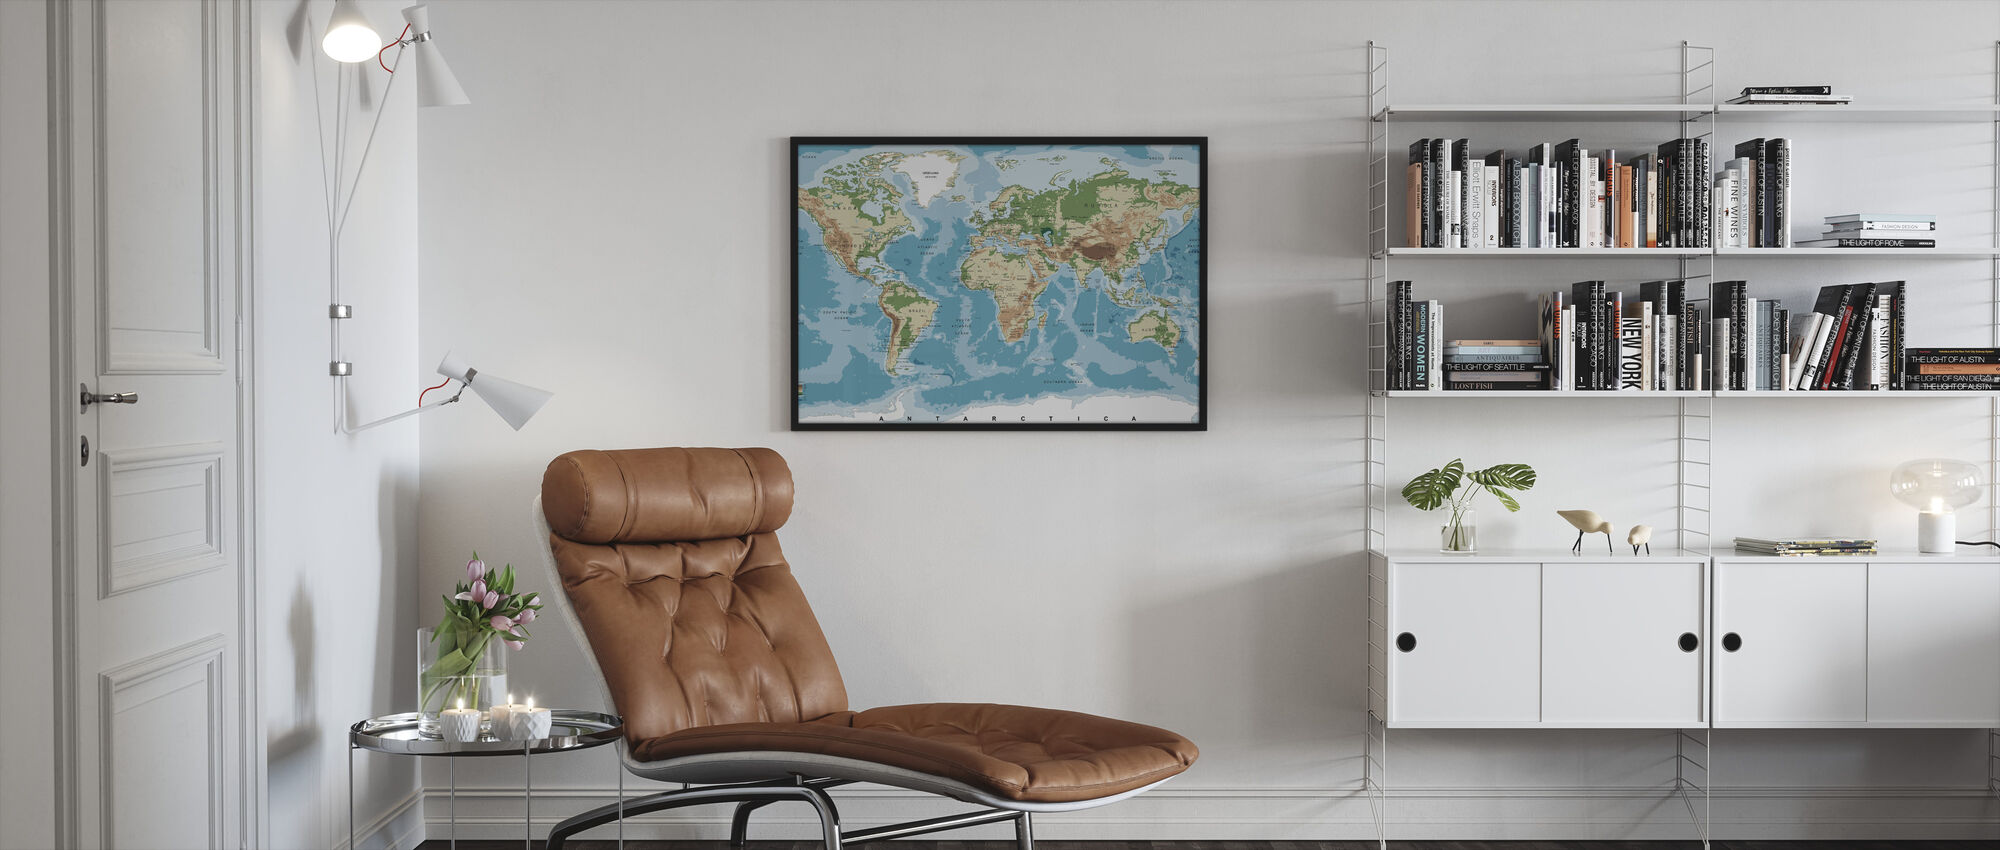 World Map with Elevation Tints - Framed print - Living Room